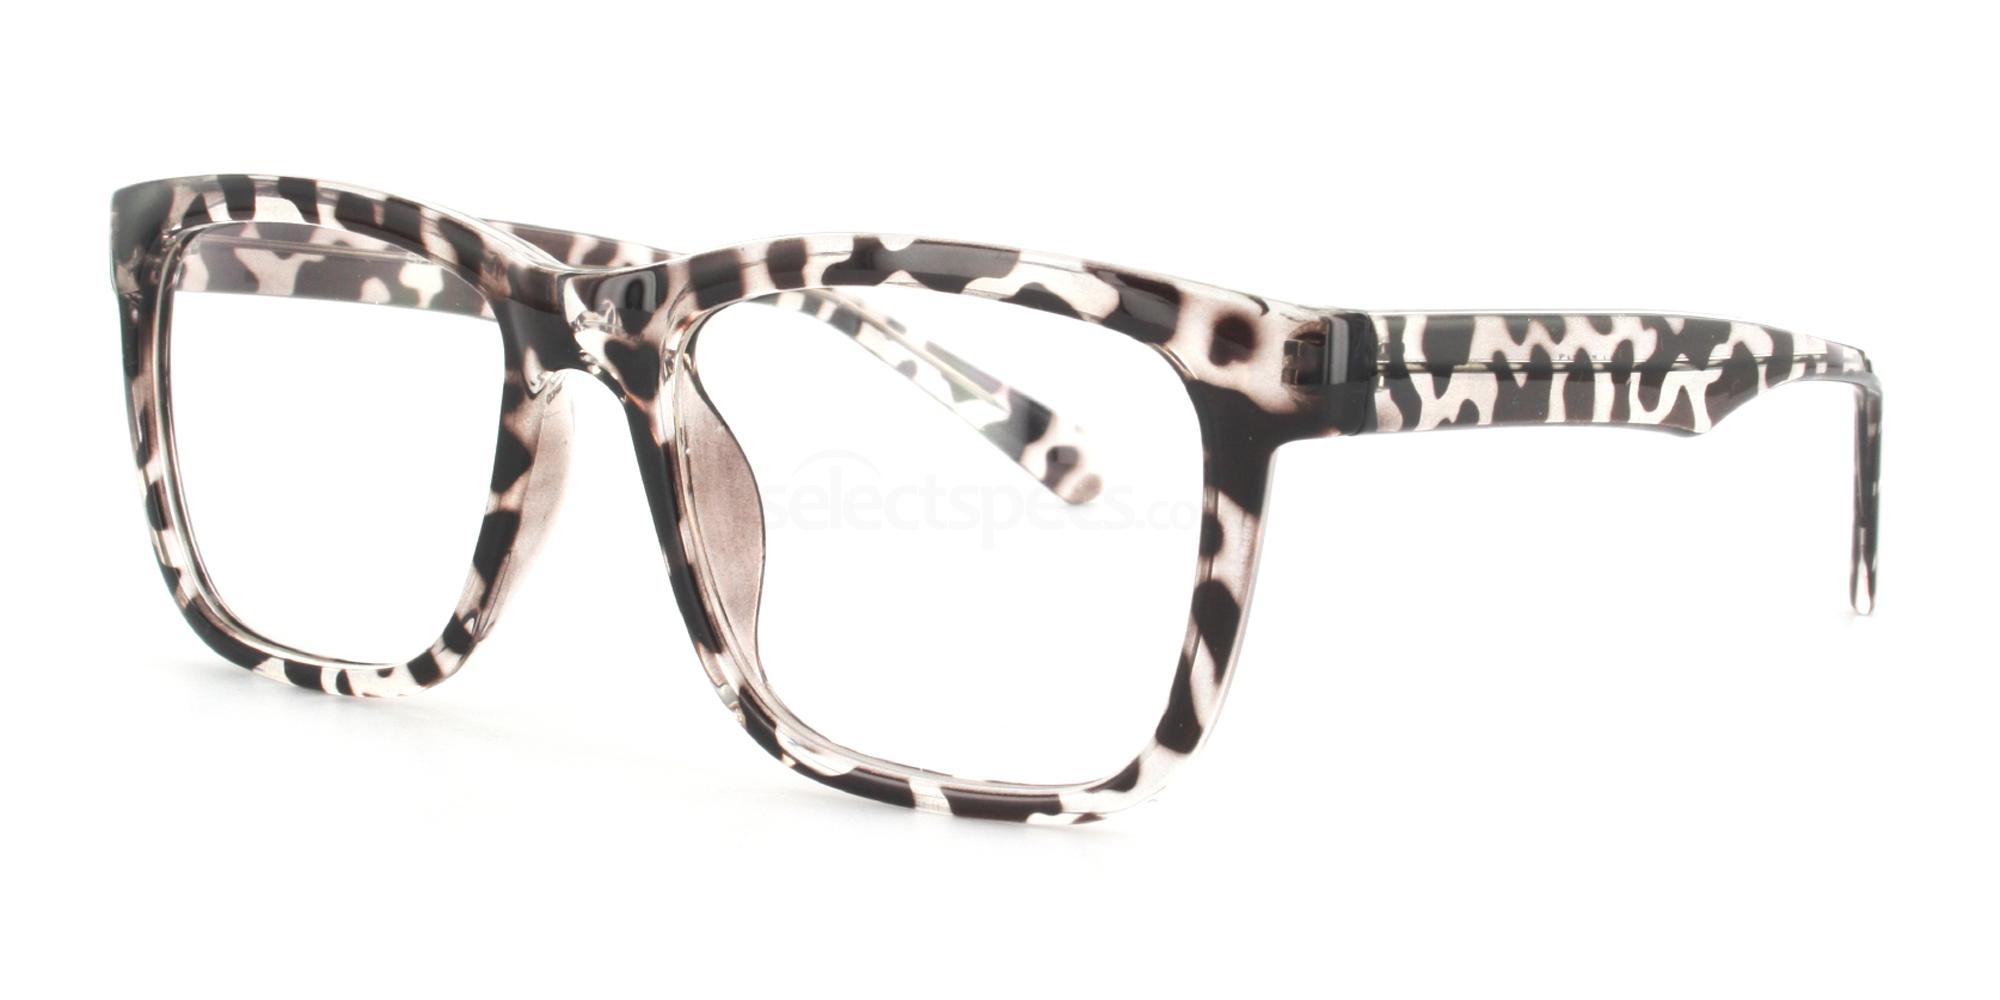 9c07d7949ff Savannah Budget Glasses at SelectSpecs  Tried Tested by Our ...